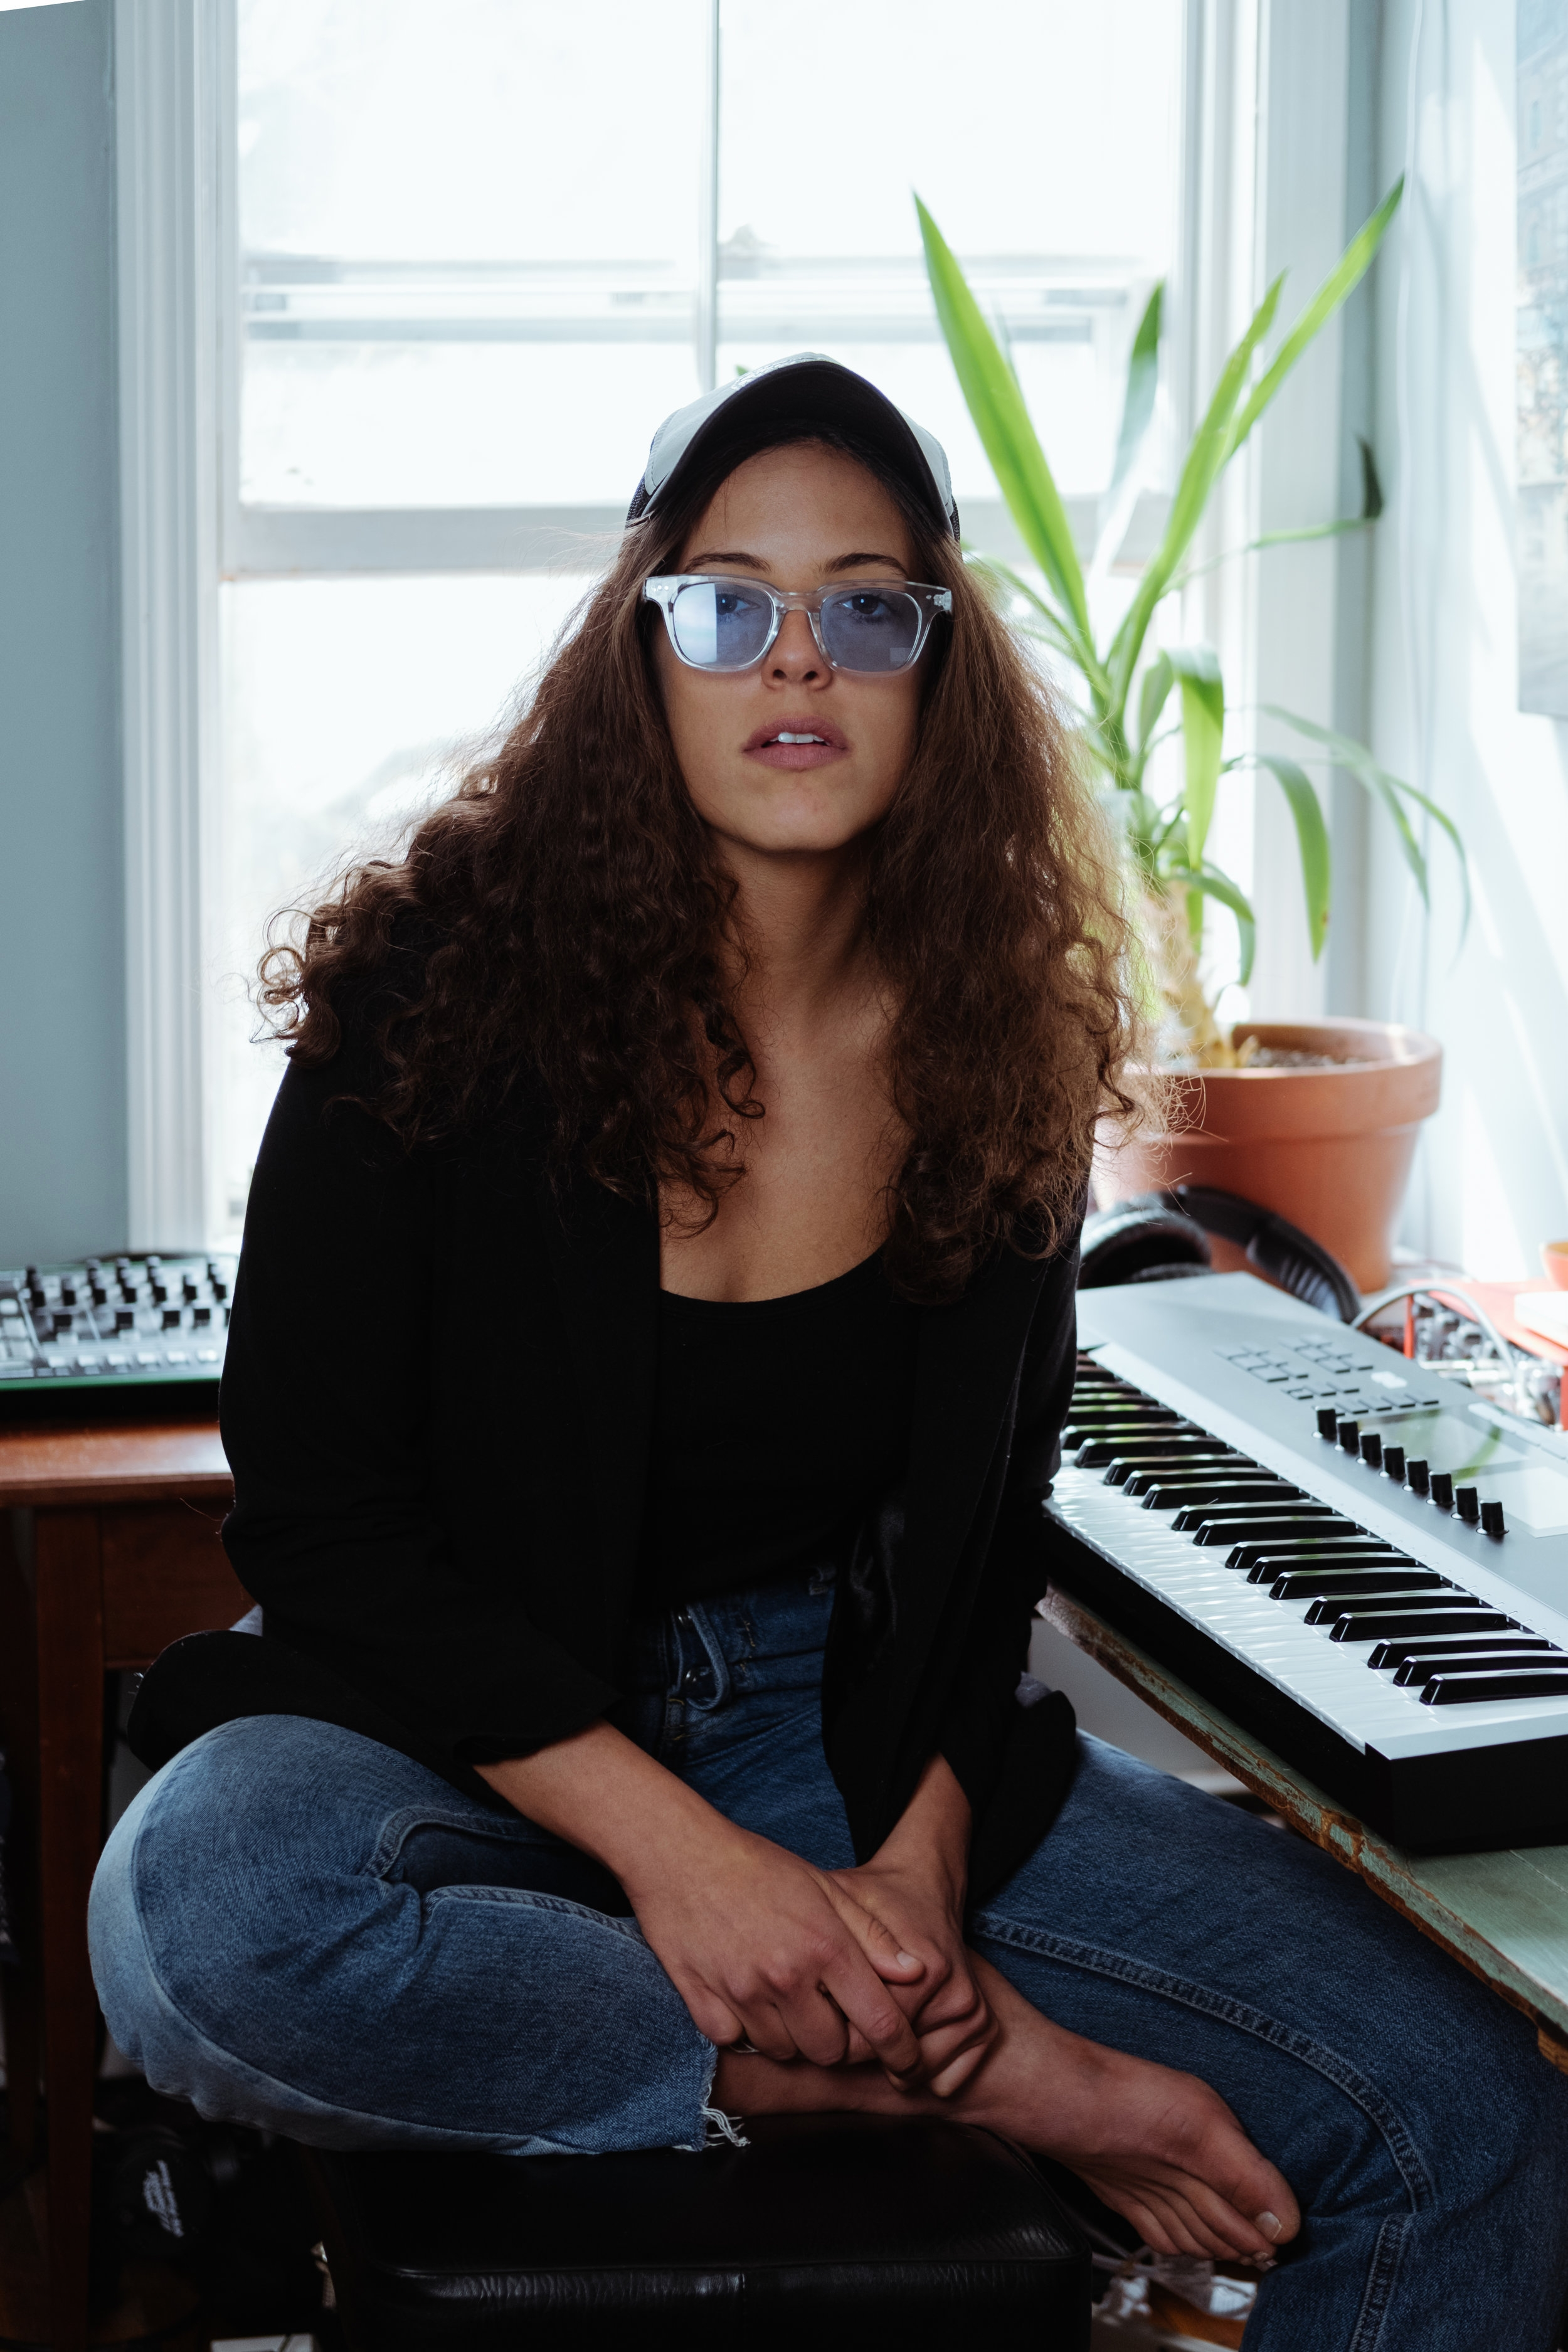 """- Raised in Philadelphia and later relocating to Tel Aviv, Israel at age 17, singer/songwriter and filmmaker Natále began performing on rooftops and in underground, cockroach-infested DIY venues with her 60-70s cover band. It was then that she developed her writing and sharing her original material.In 2014, on a failed trip to India, she discovered Providence and quickly became enchanted with the music and arts scene. Inspired by the New England community, she began shaping her sound, writing acoustic, folk-inspired songs, while incorporating her soul and jazz influences, occasionally singing in Hebrew - the native tongue of her father.In 2015, Natále put her own musician aspirations on hold to direct & co-produce the documentary """"Am I the Dream or the Dreamer? : a film about The Low Anthem, featuring The Avett Brothers, Brian Blade, Iron & Wine. The film screened at the End of the Road Festival in England during the summer of 2017, and quickly became Lucinda Williams' band approved.After years of exploring the life of musicians from behind the camera, she was ready to expand her own creative capabilities - writing, recording, and performing new music and directing short films. In 2018, she opened for Josiah Johnson (formerly of the Head and the Heart) and Christopher Paul Stelling.Currently, she spends her time between Providence, Philadelphia, Prague, and Tel Aviv - working on music & film and connecting with family."""